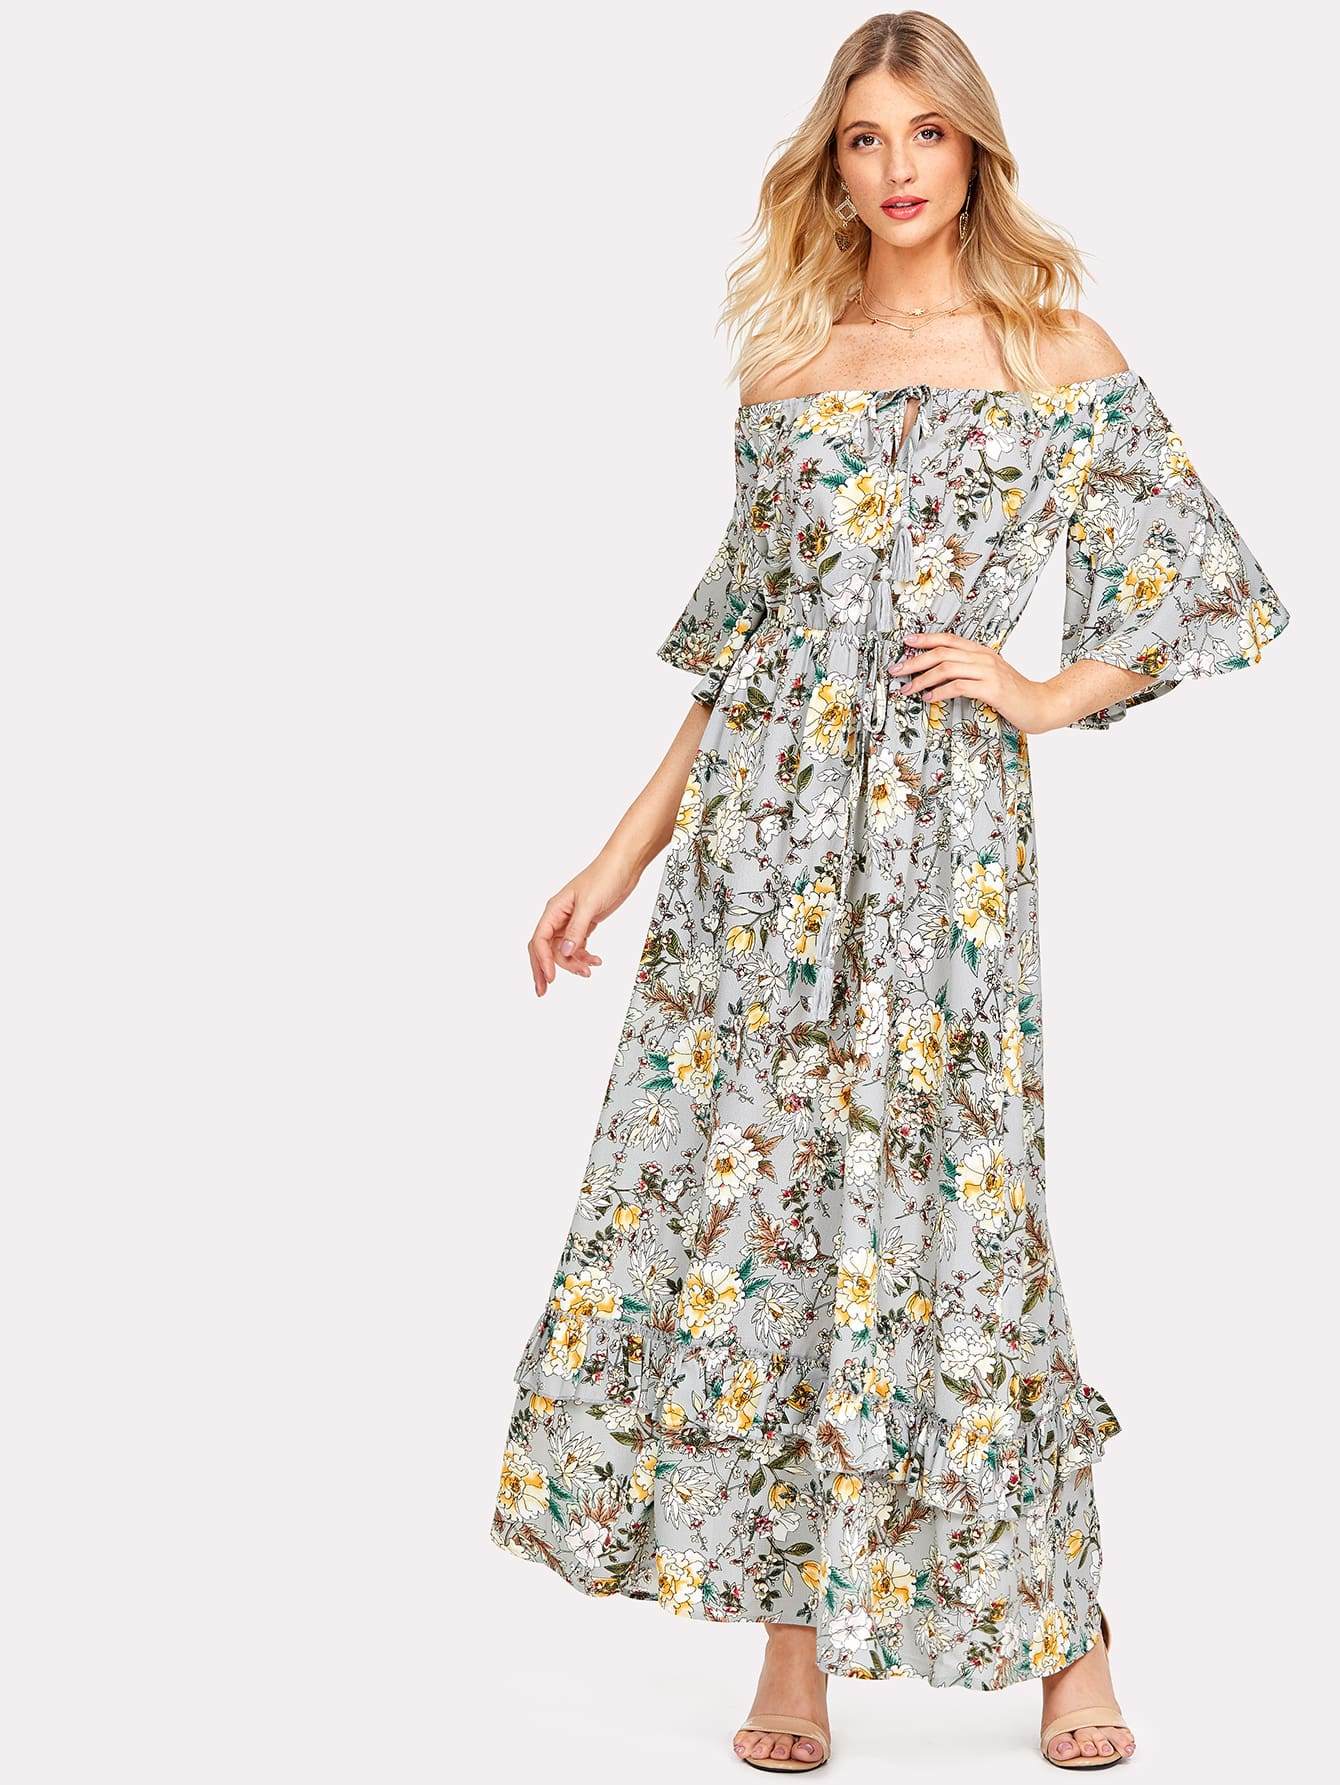 Flower Print Knot Front Ruffle Trim Bardot Dress knot front shirred ruffle sleeve bardot top